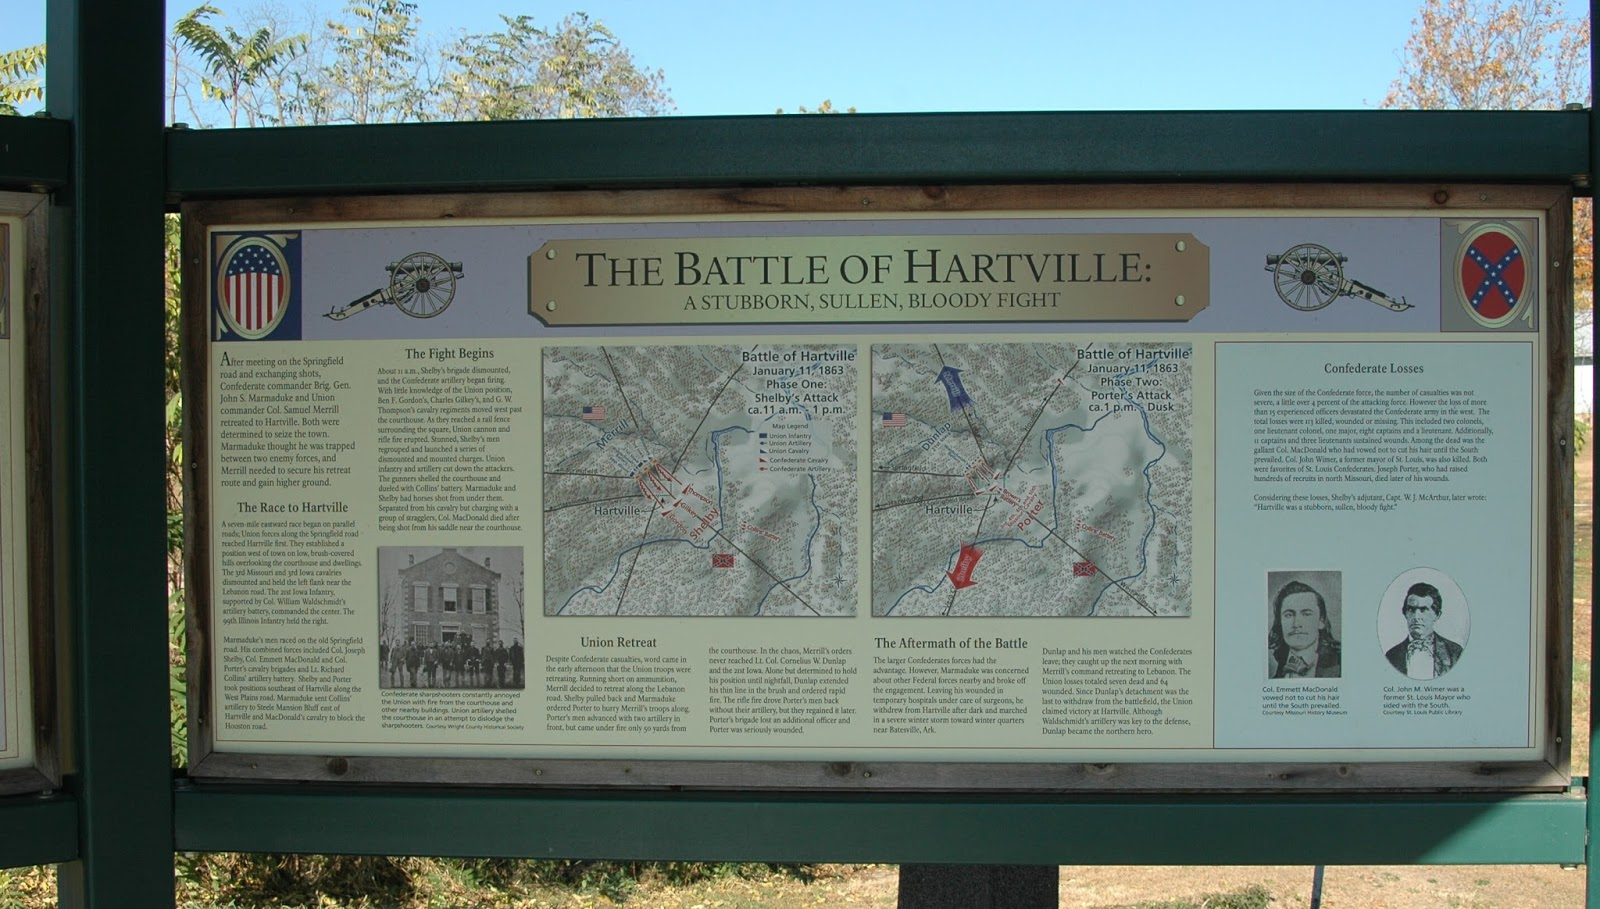 battle of hartville The battle of hartville was fought january 9-11, 1863, in wright county, missouri , as part of john s marmaduke 's first expedition into missouri , during the american civil war background map of hartville battlefield core and study areas by the american battlefield protection program.